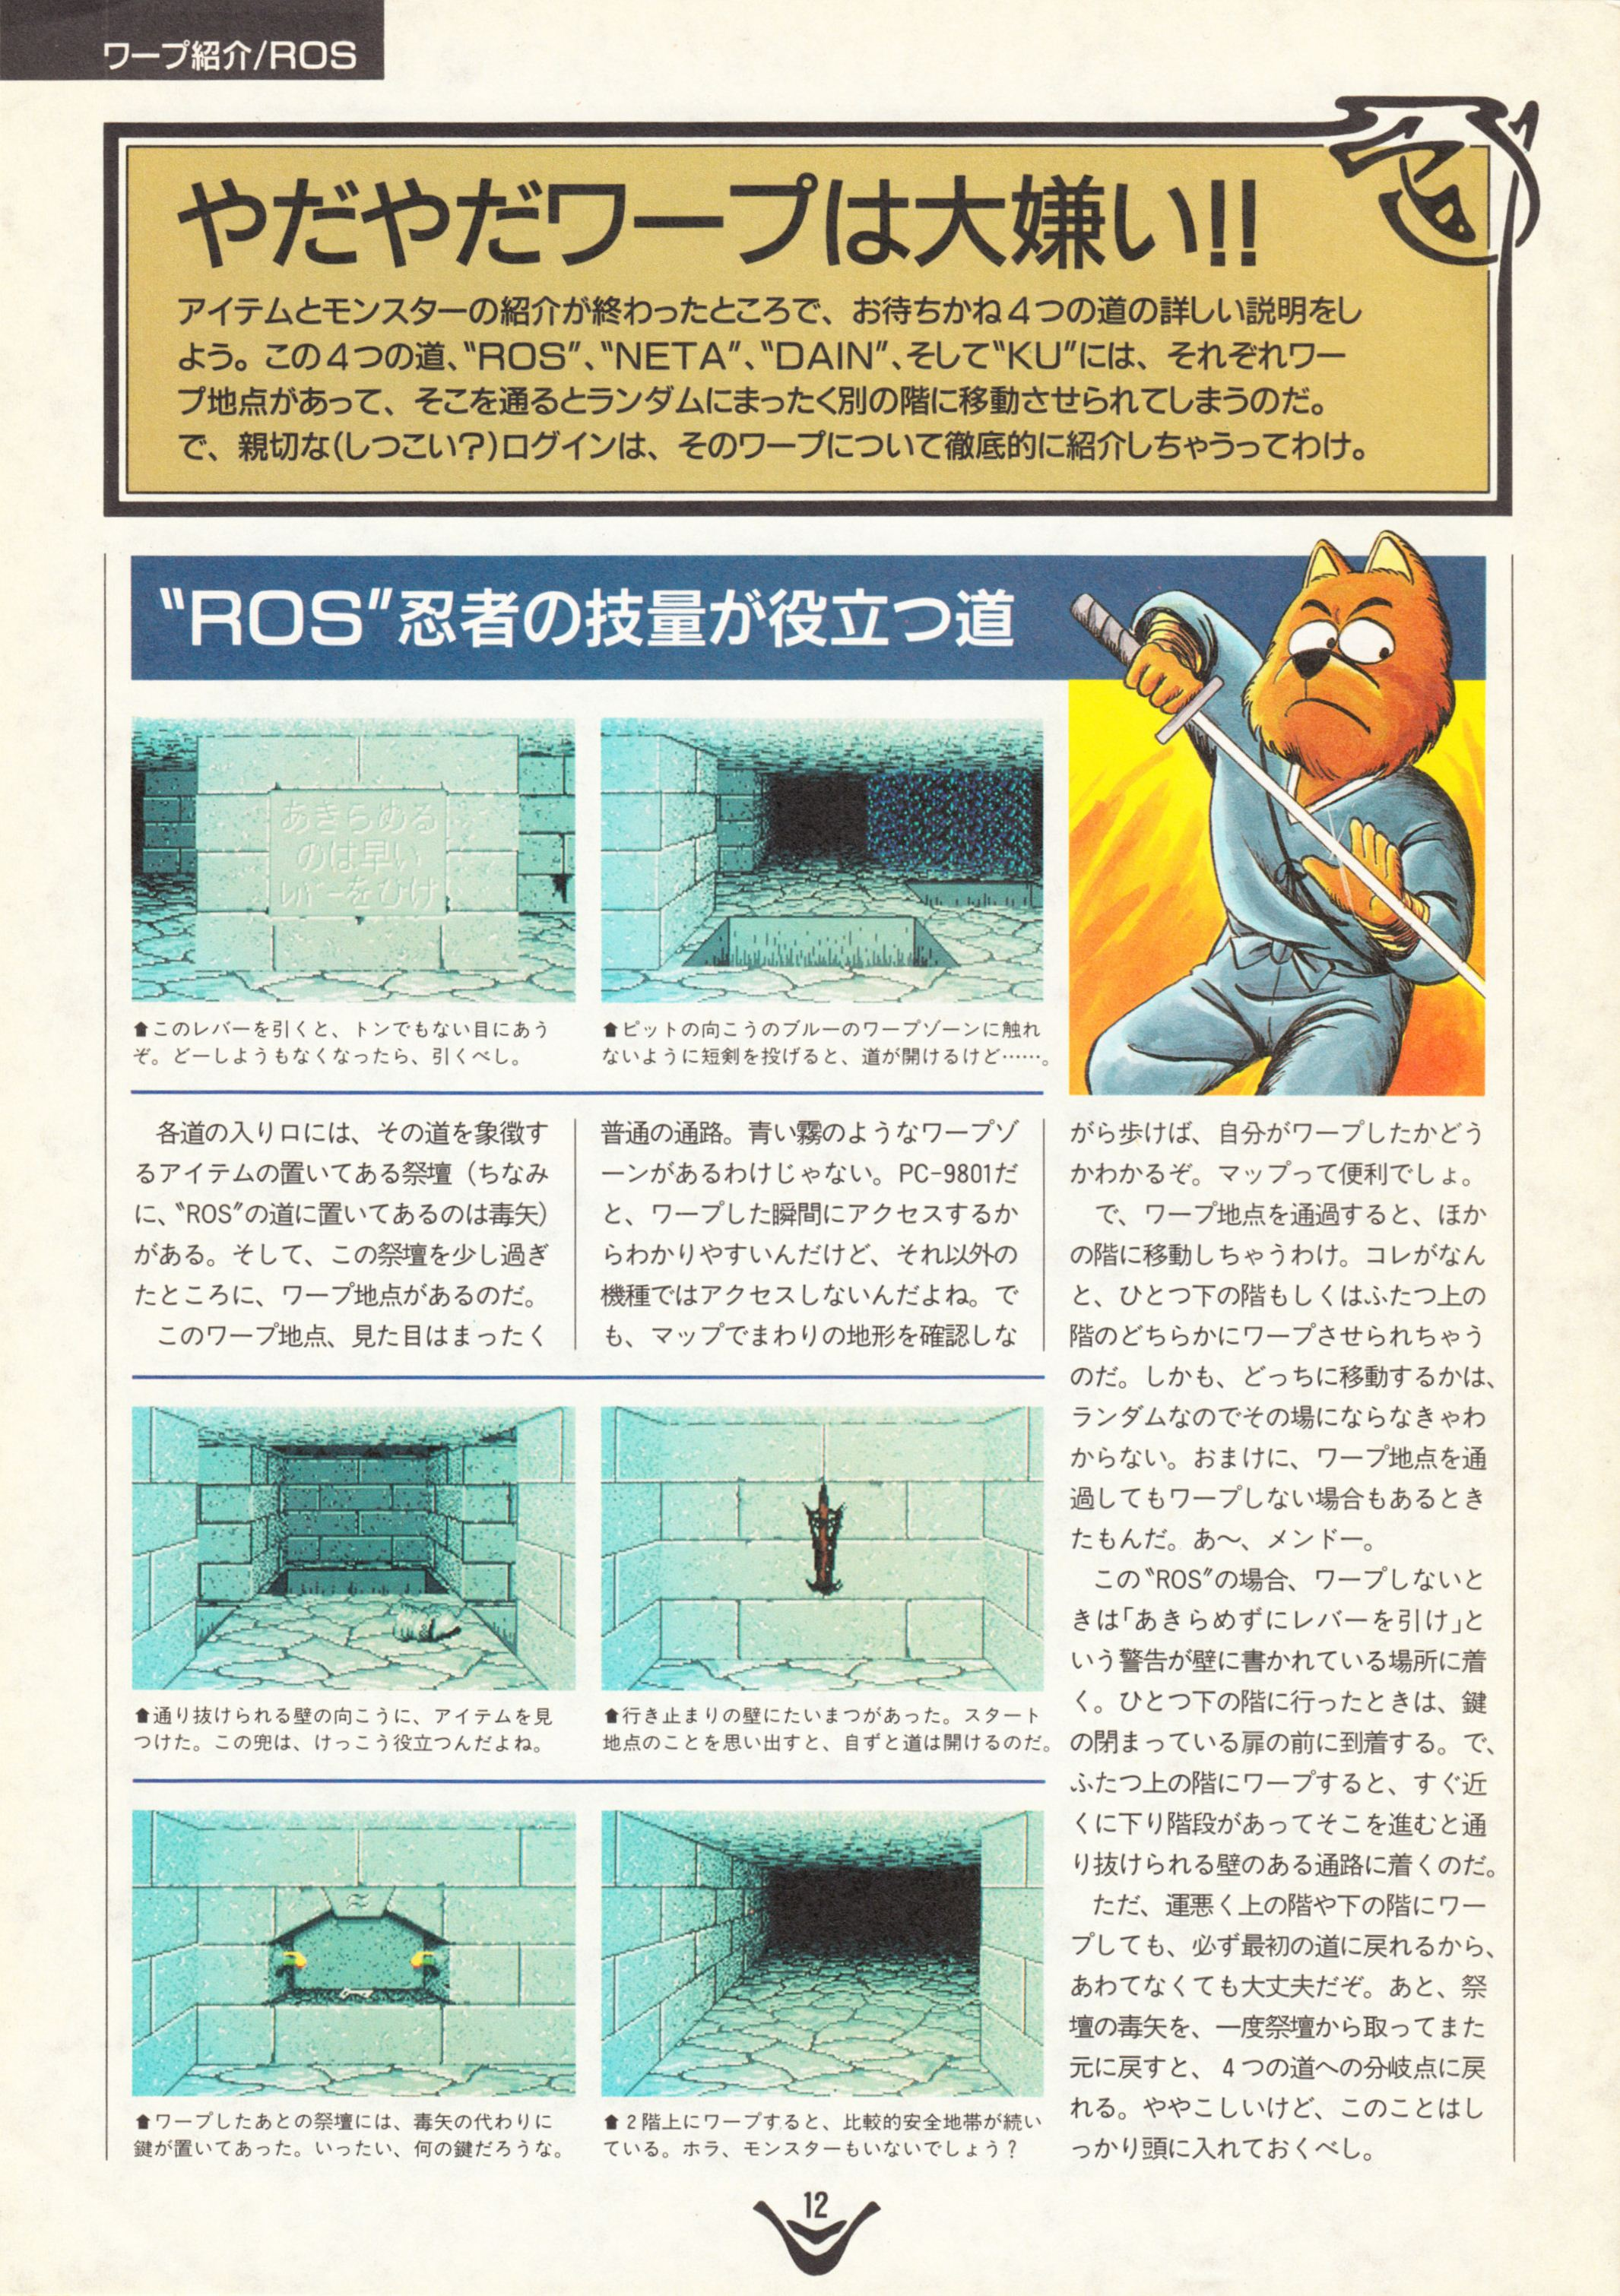 Special Supplement - Chaos Strikes Back Guide published in Japanese magazine 'Login', Vol 10 No 3 01 February 1991, Page 12